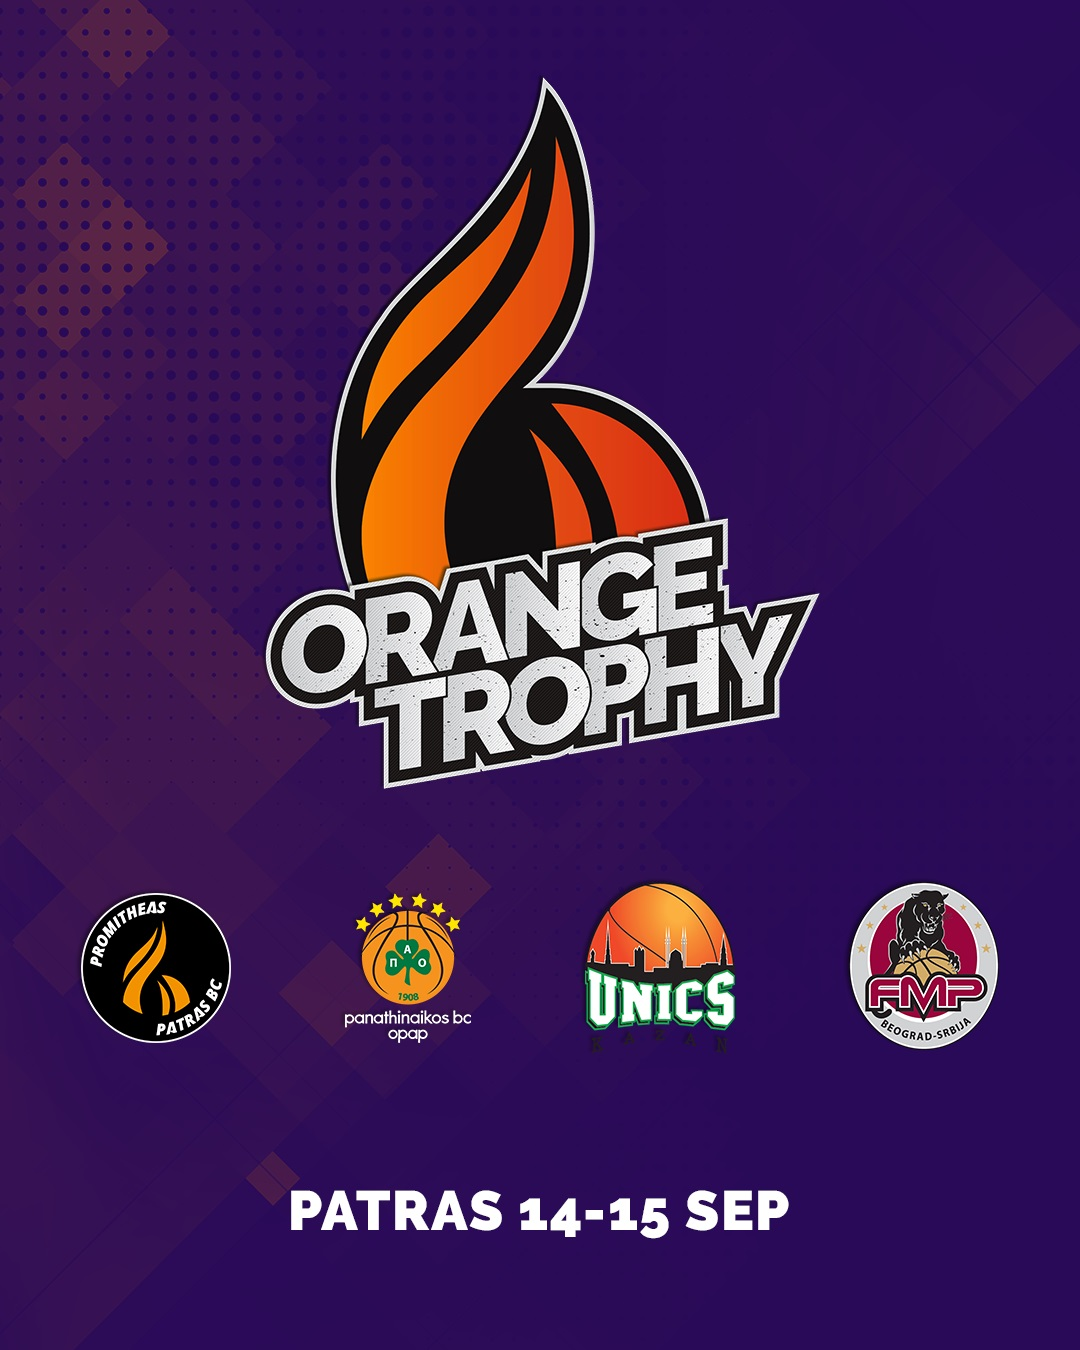 orange trophy19 logo 202